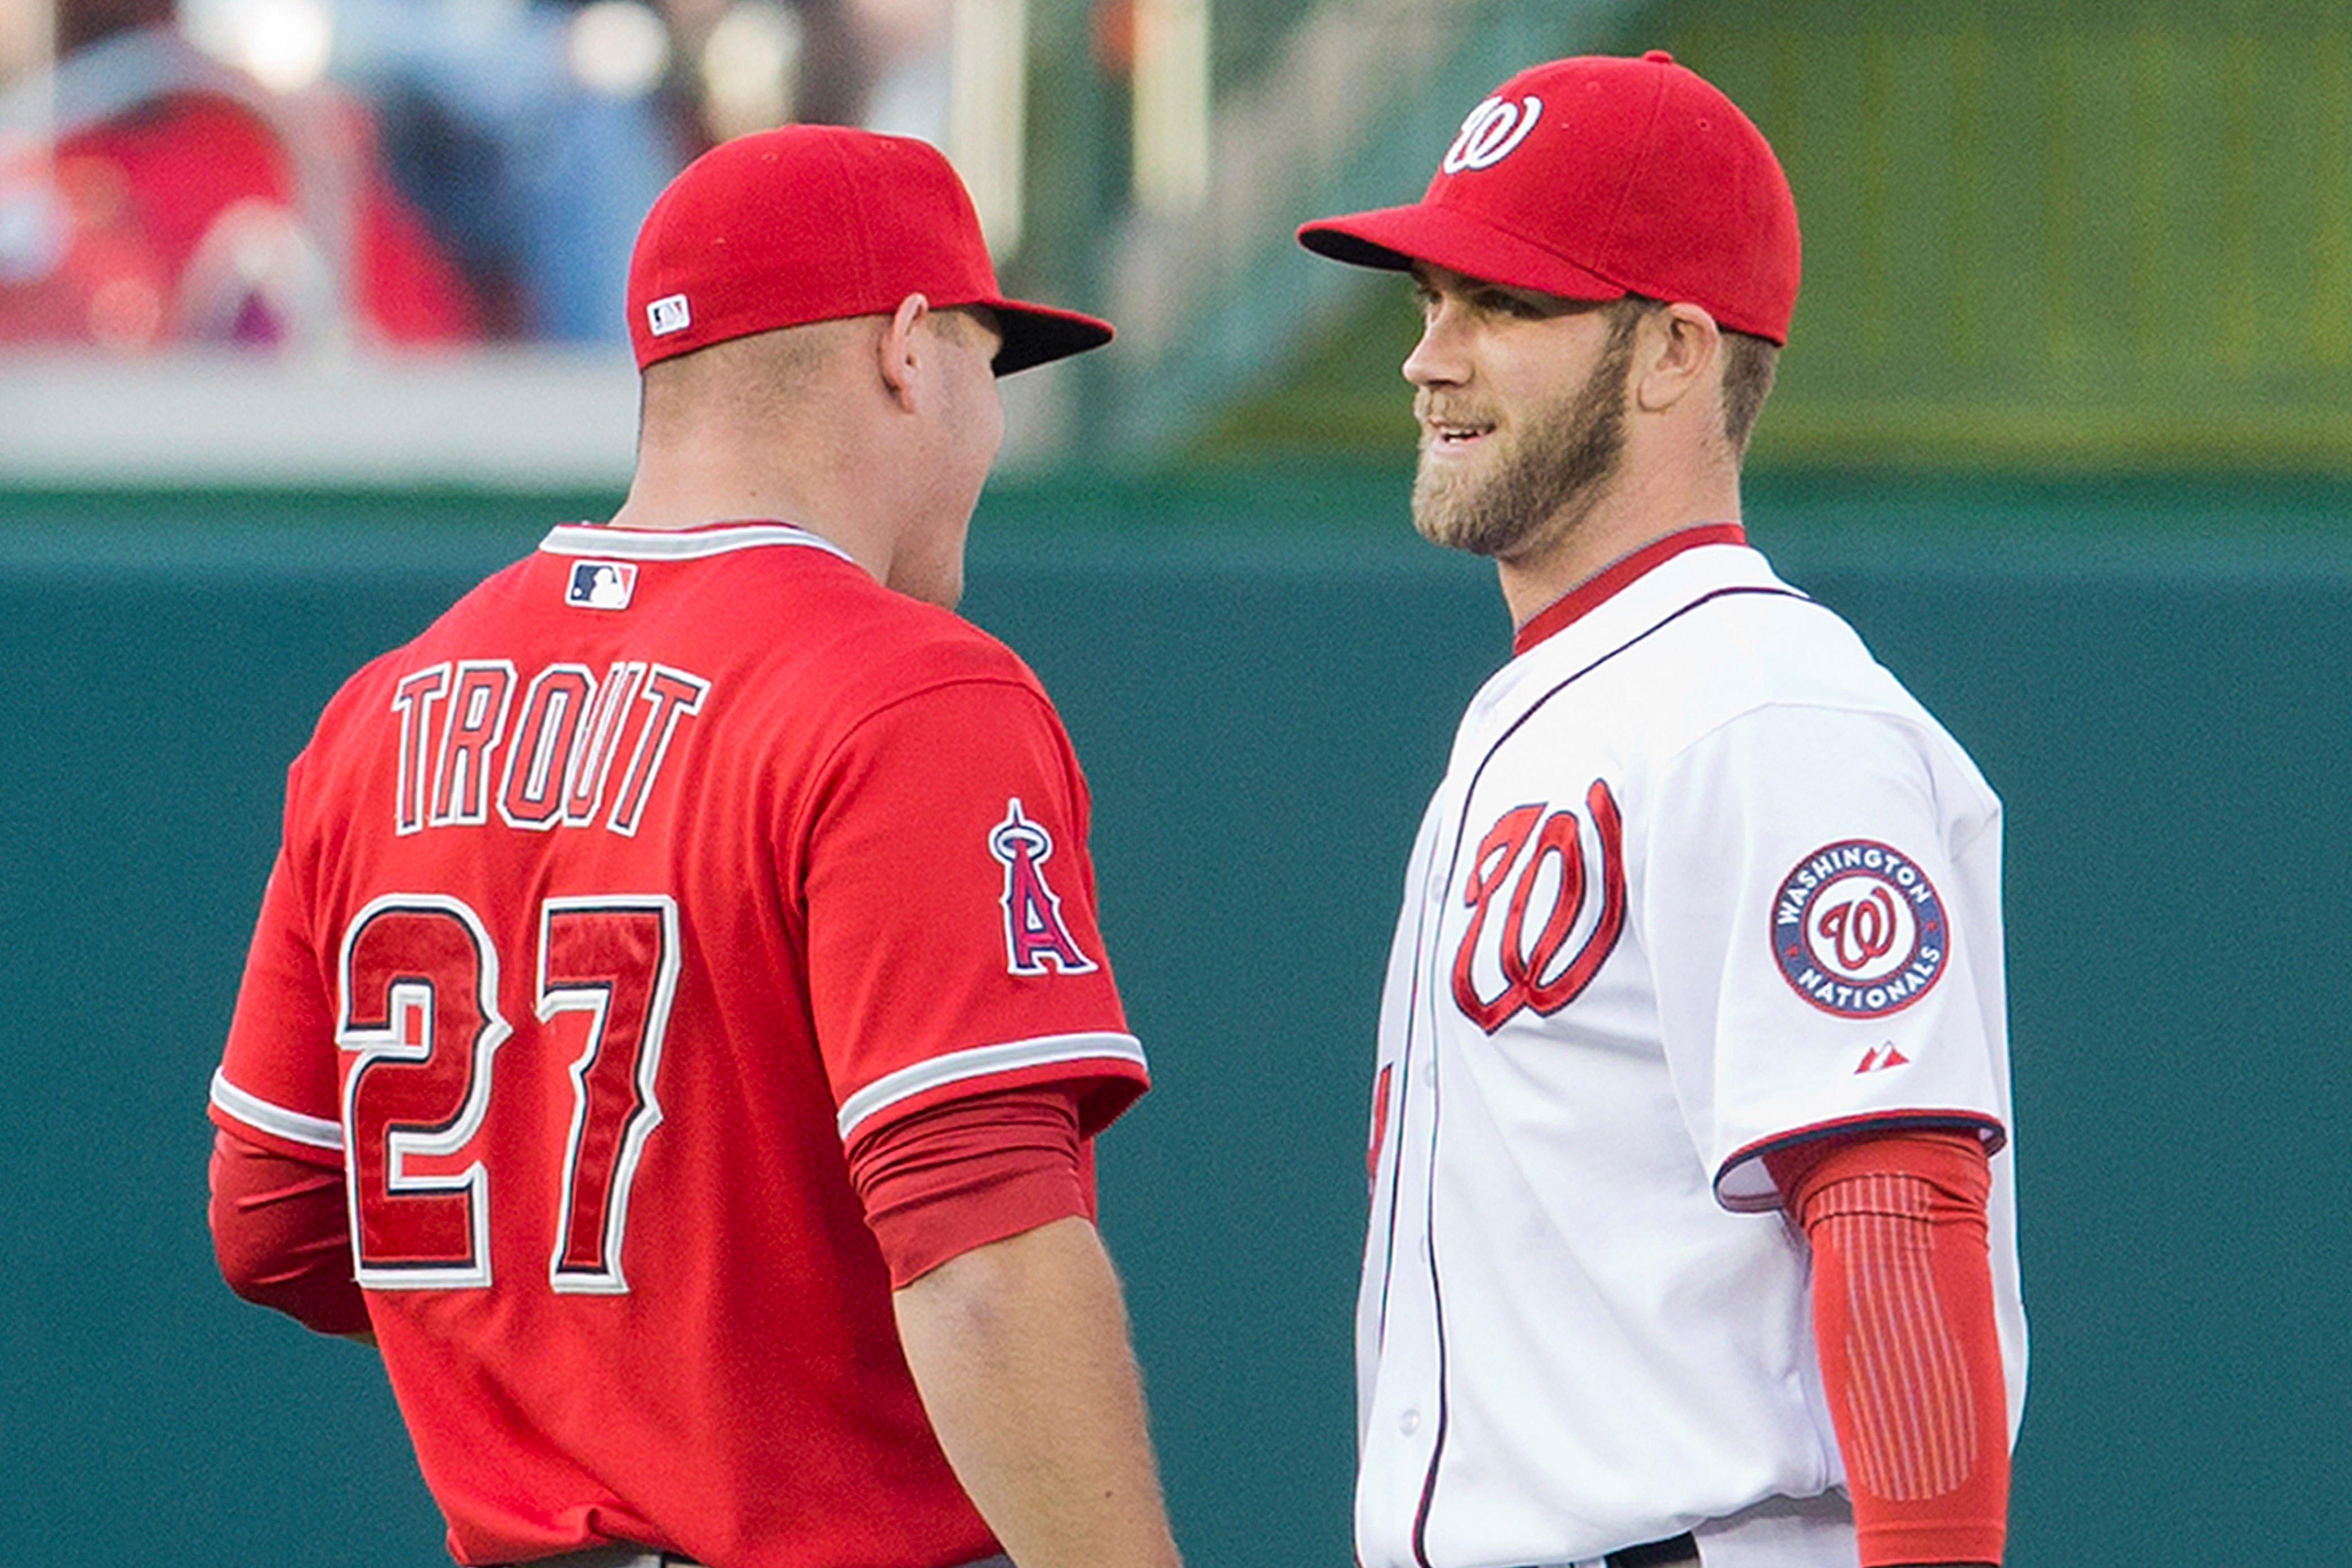 Bryce Harper disregards tampering, sends loud message to Mike Trout